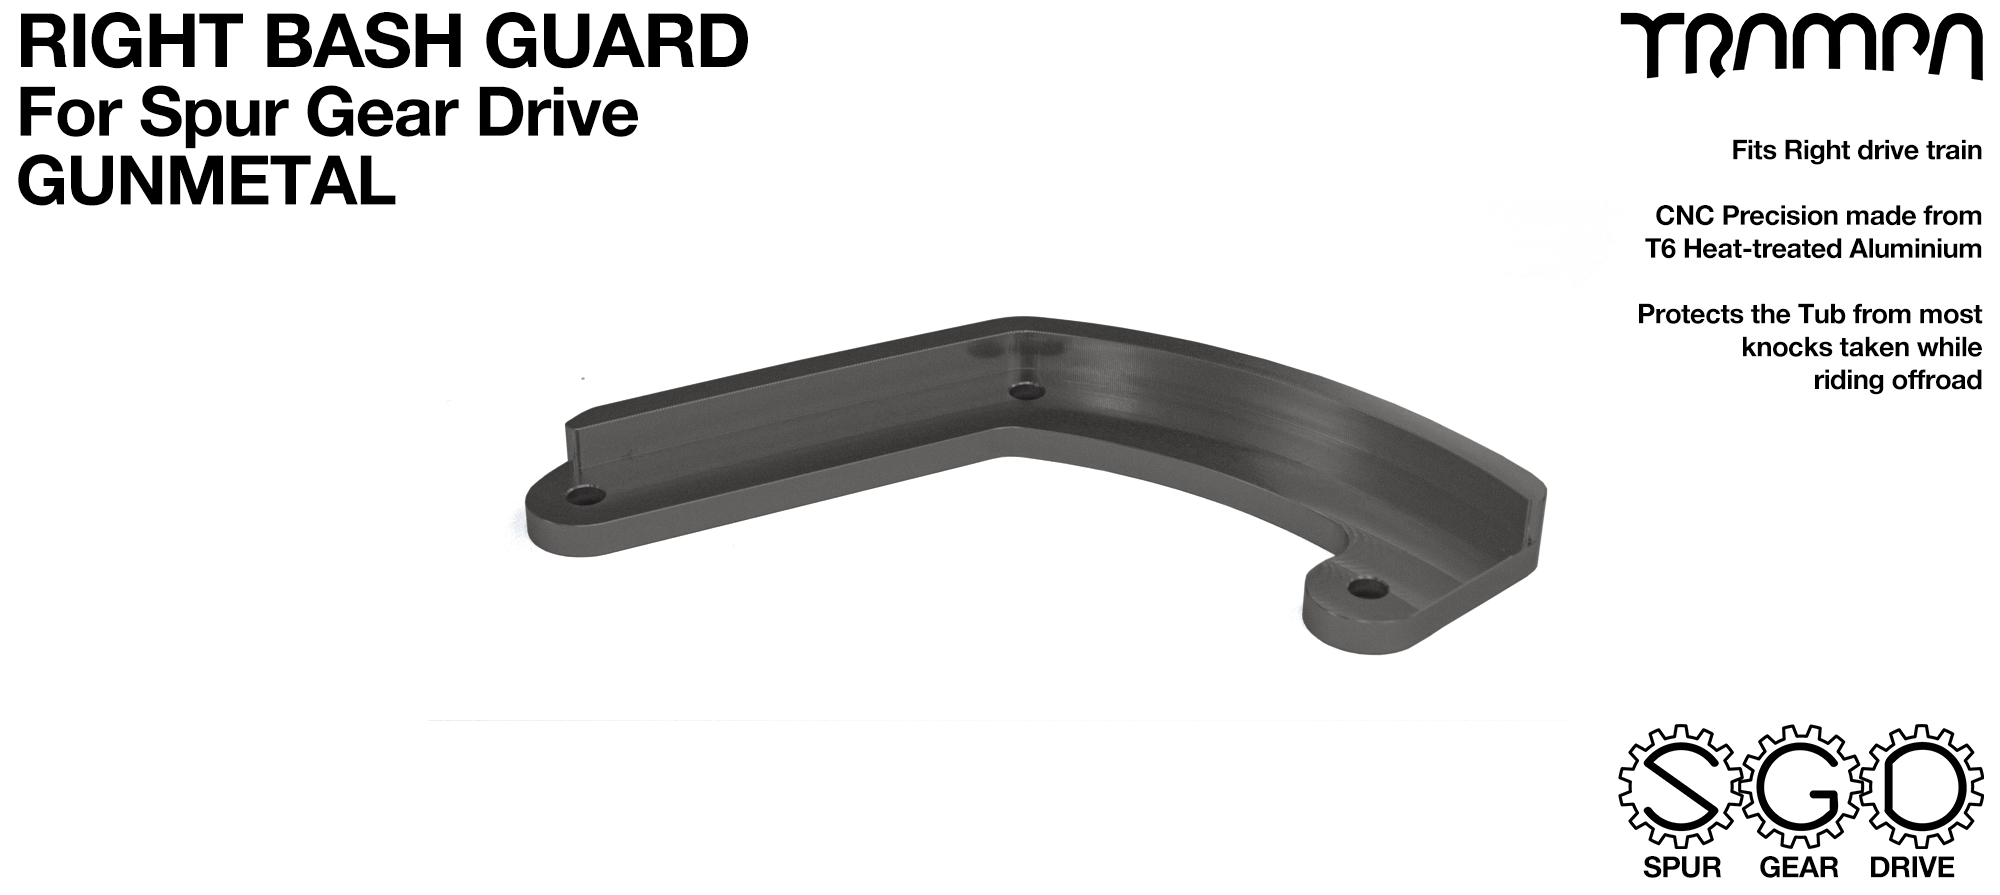 MkII Spur Gear Drive Bash Guard - RIGHT Side - GUNMETAL